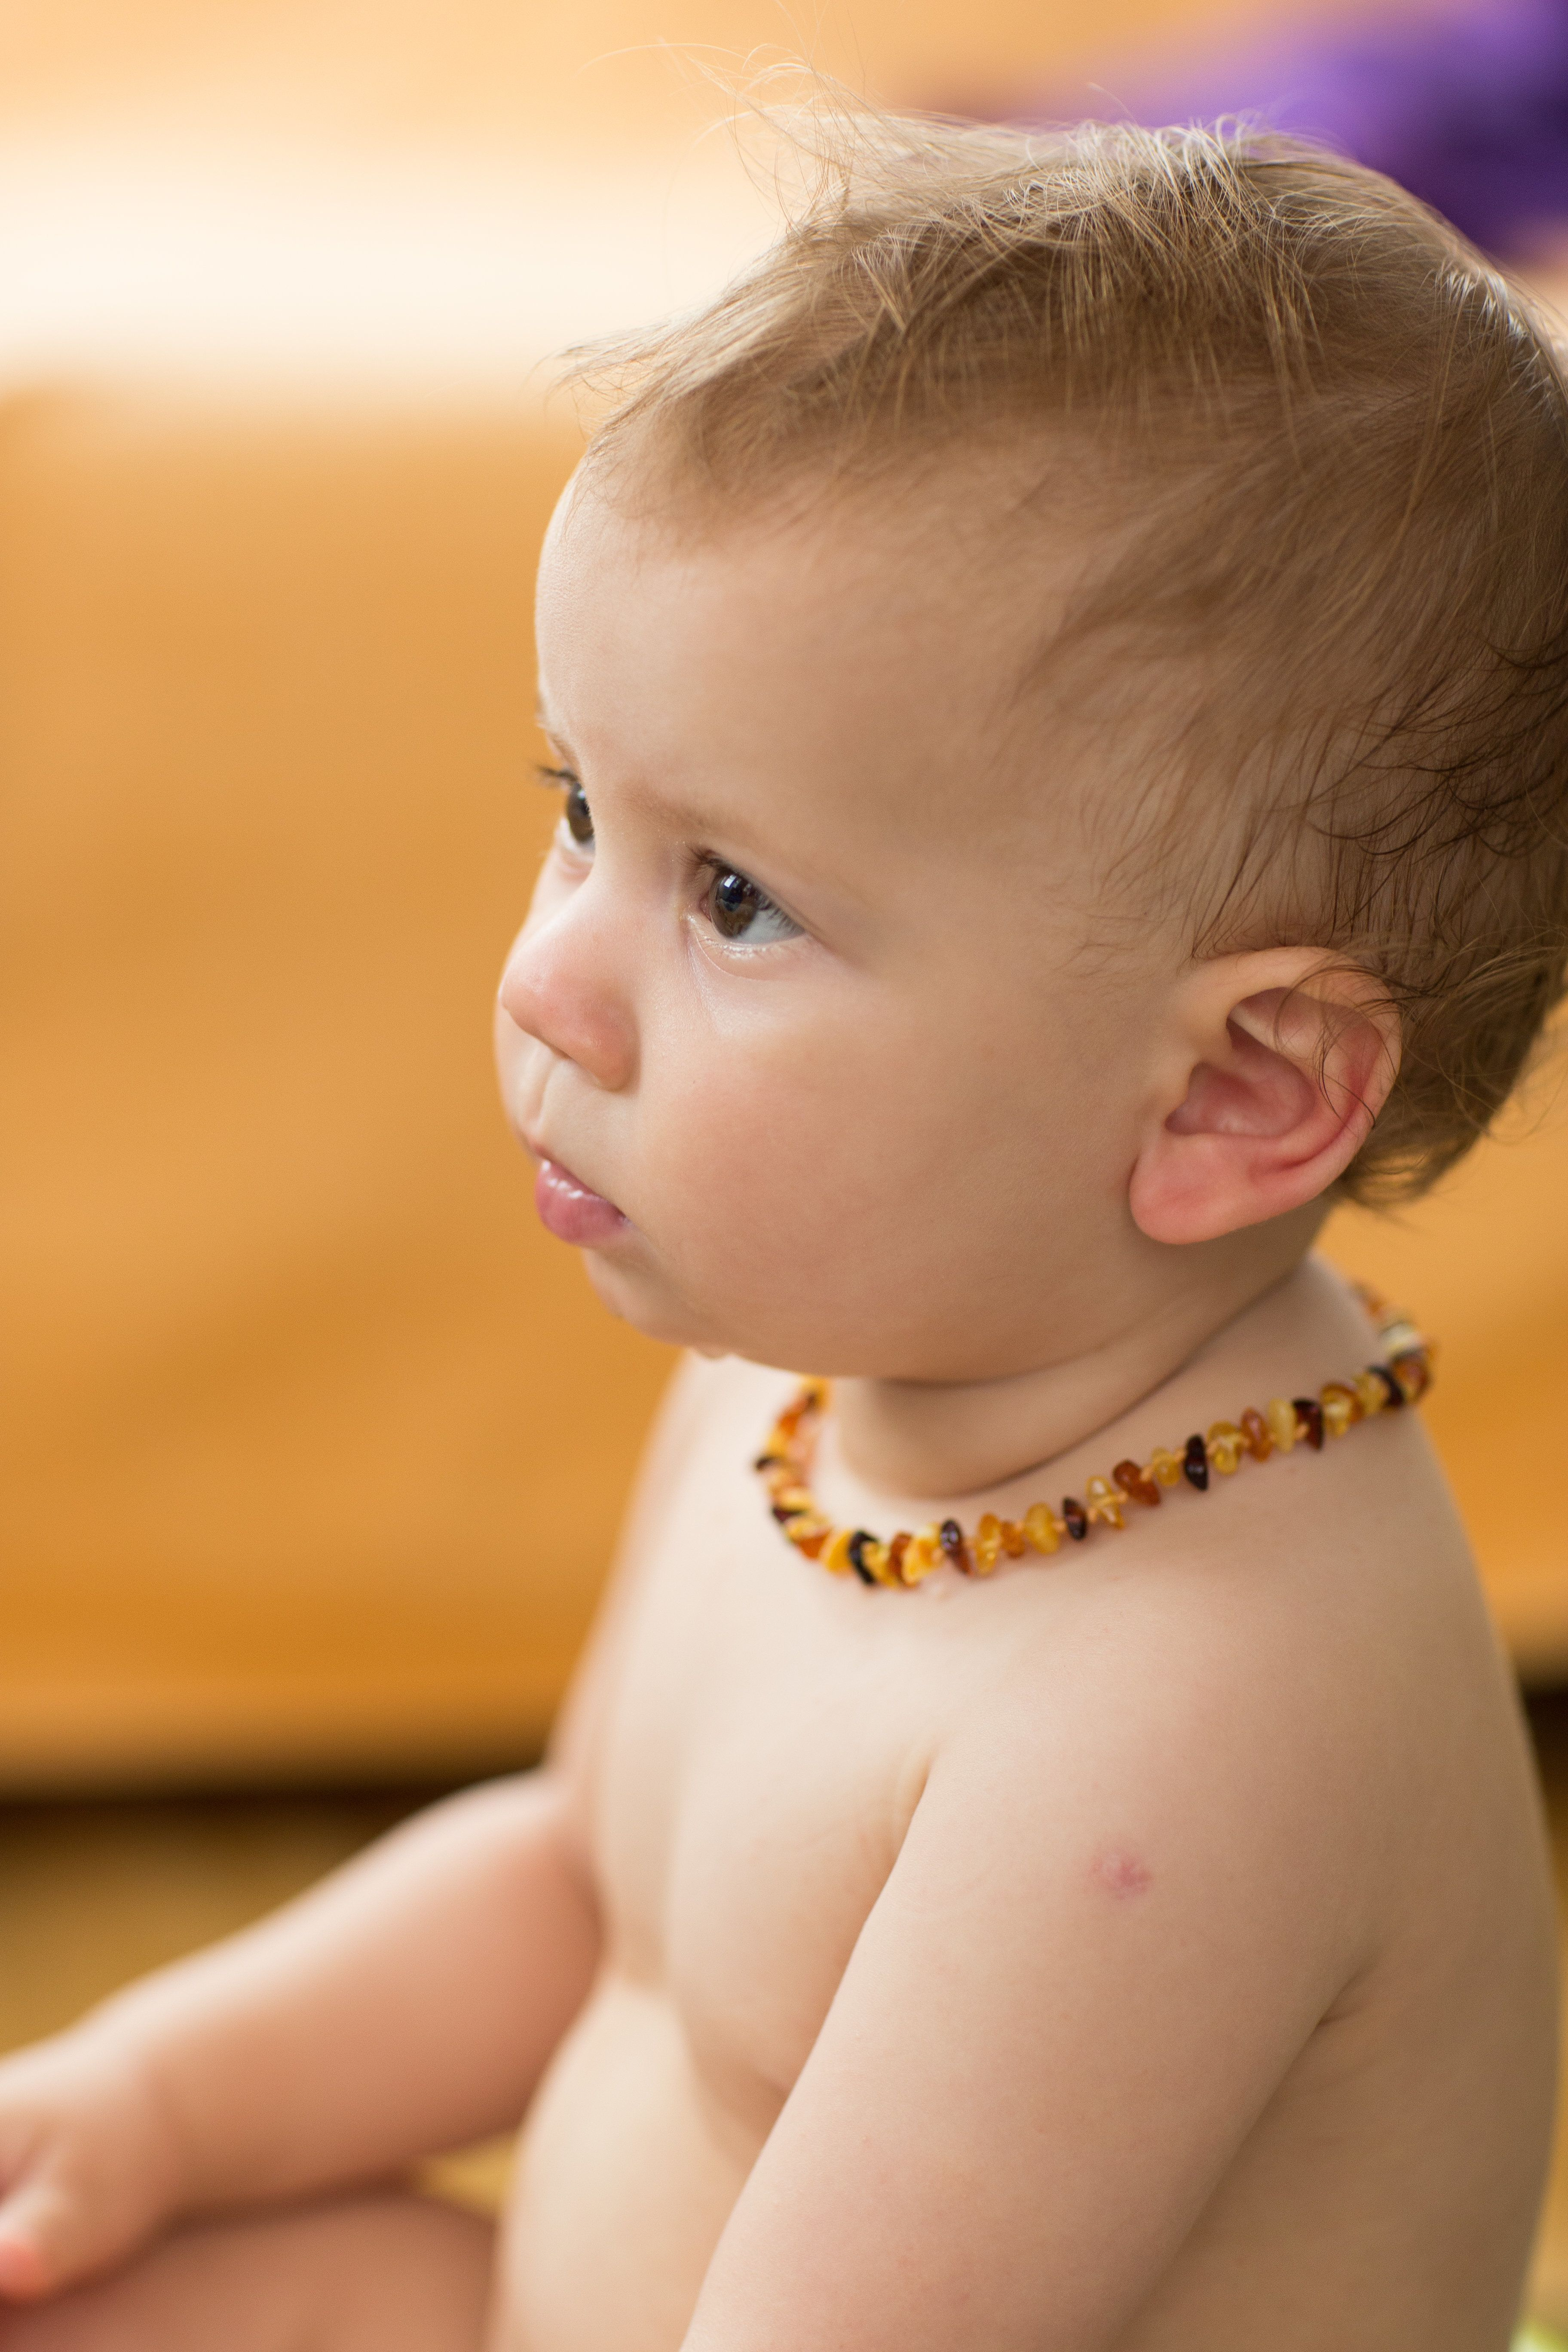 Teething rings can pose a severe hazard, according to the FDA.